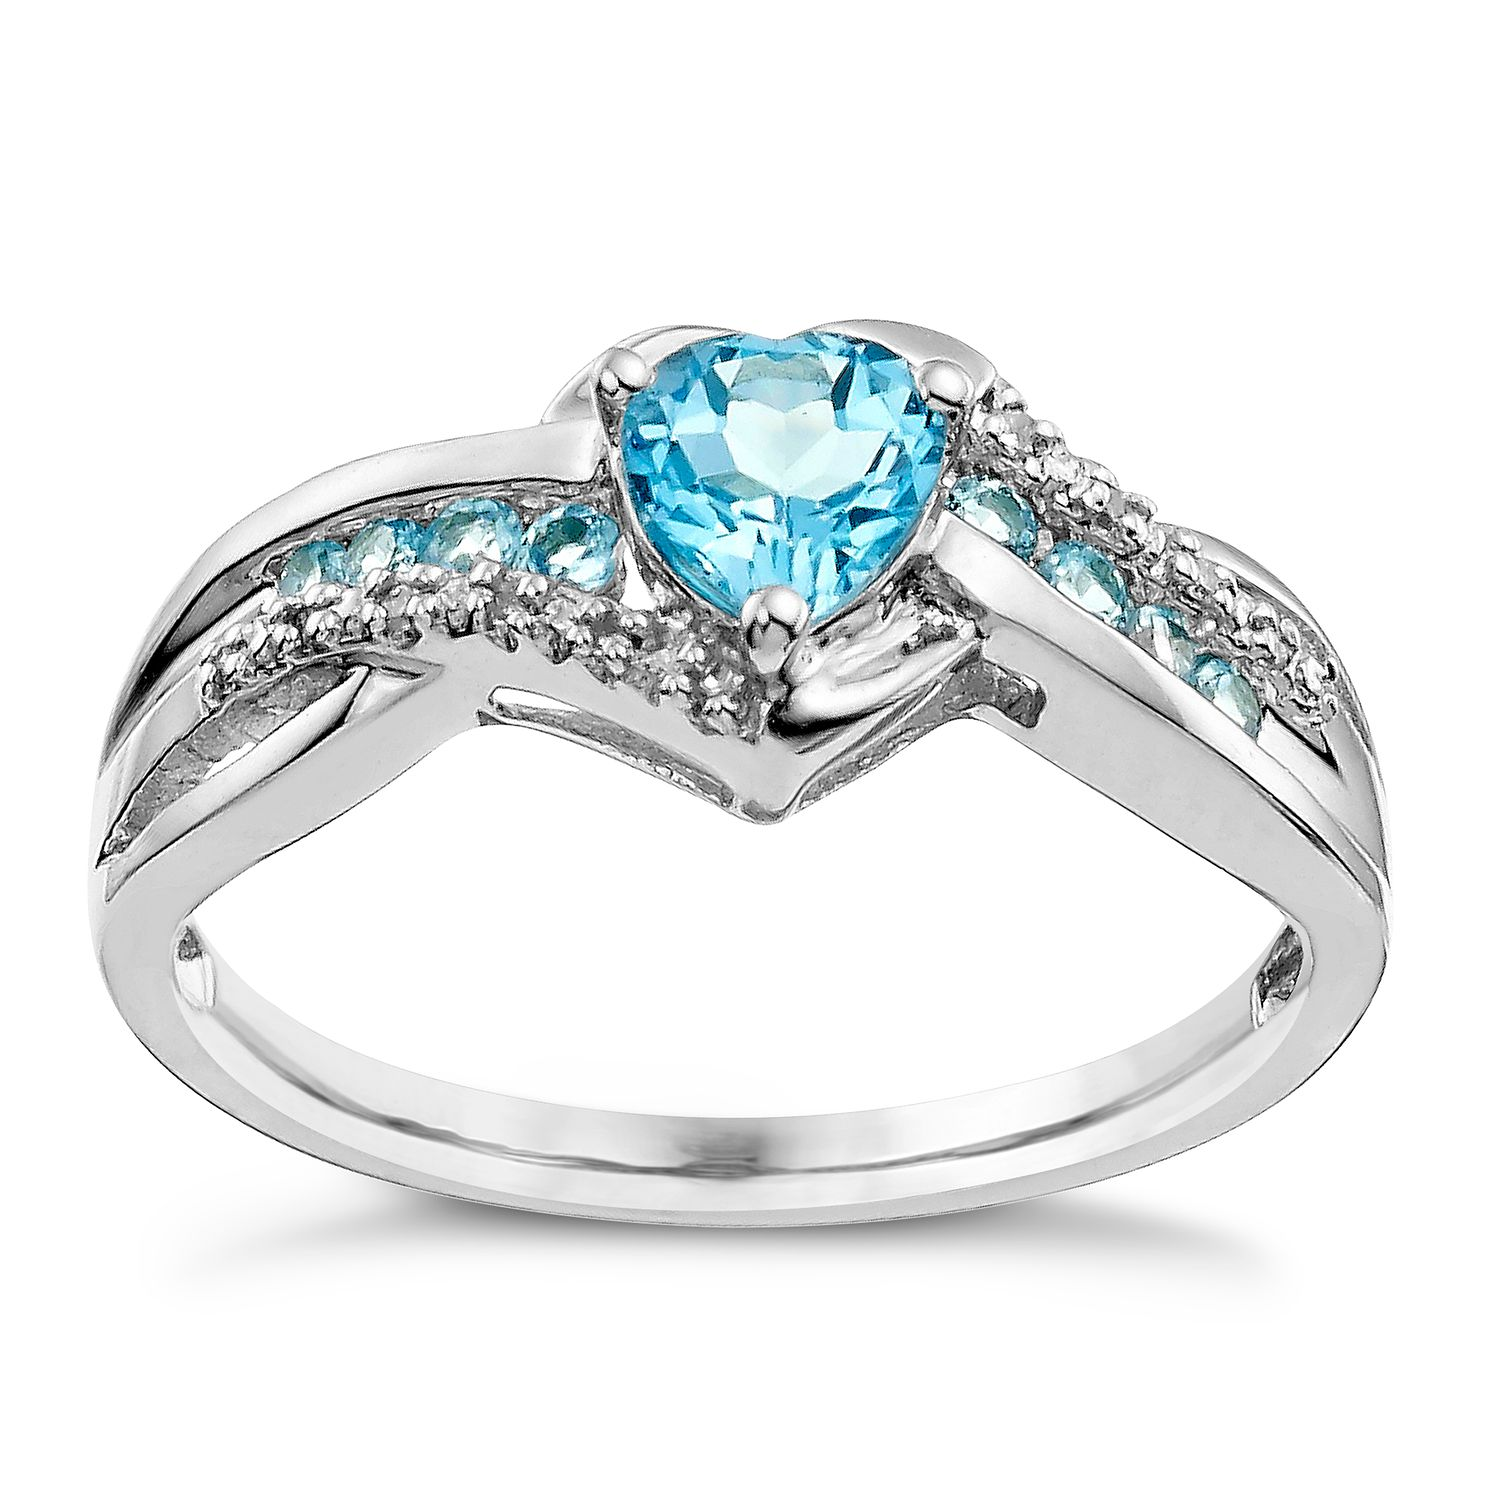 topaz full women diamond white in gold from for blue genuine cut on jewellery accessories natural rings item jewelry